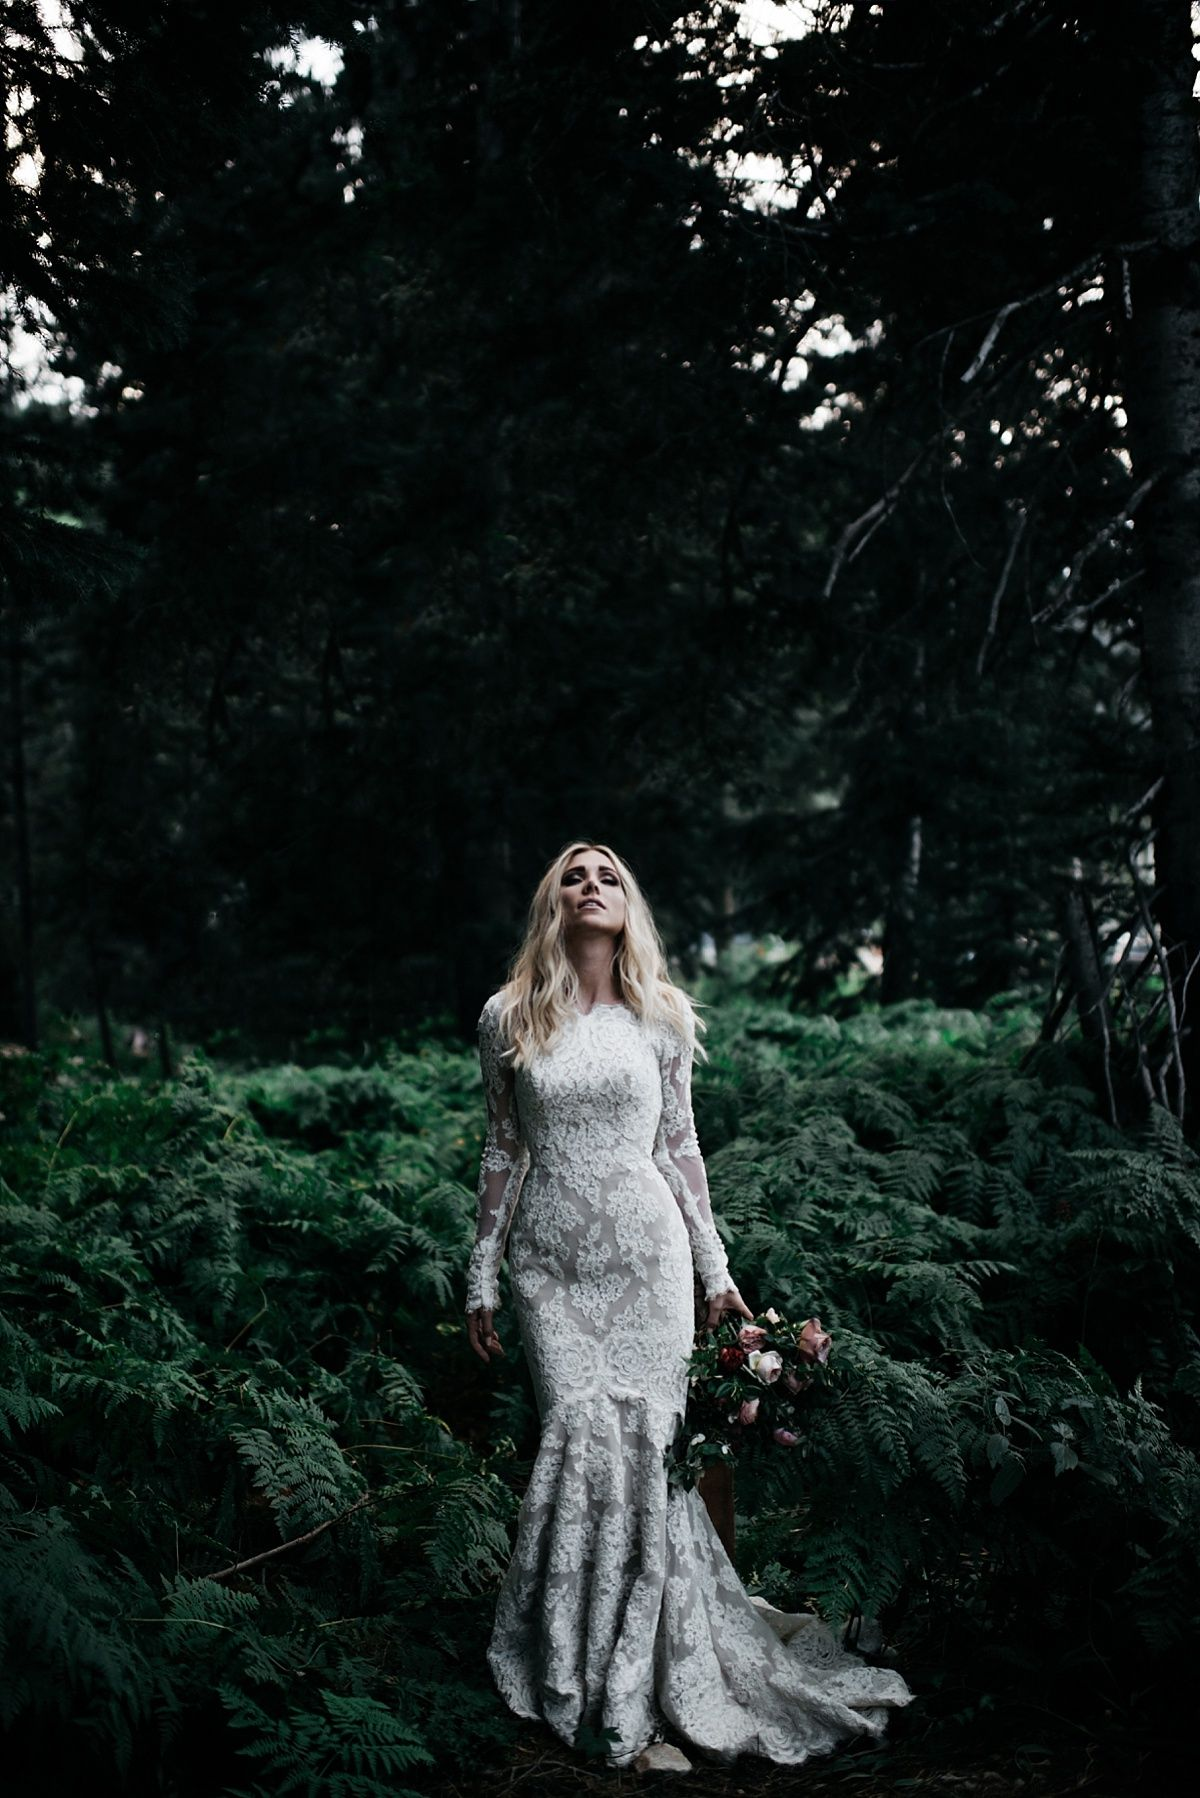 modest wedding dress with long lace sleeve from alta moda.